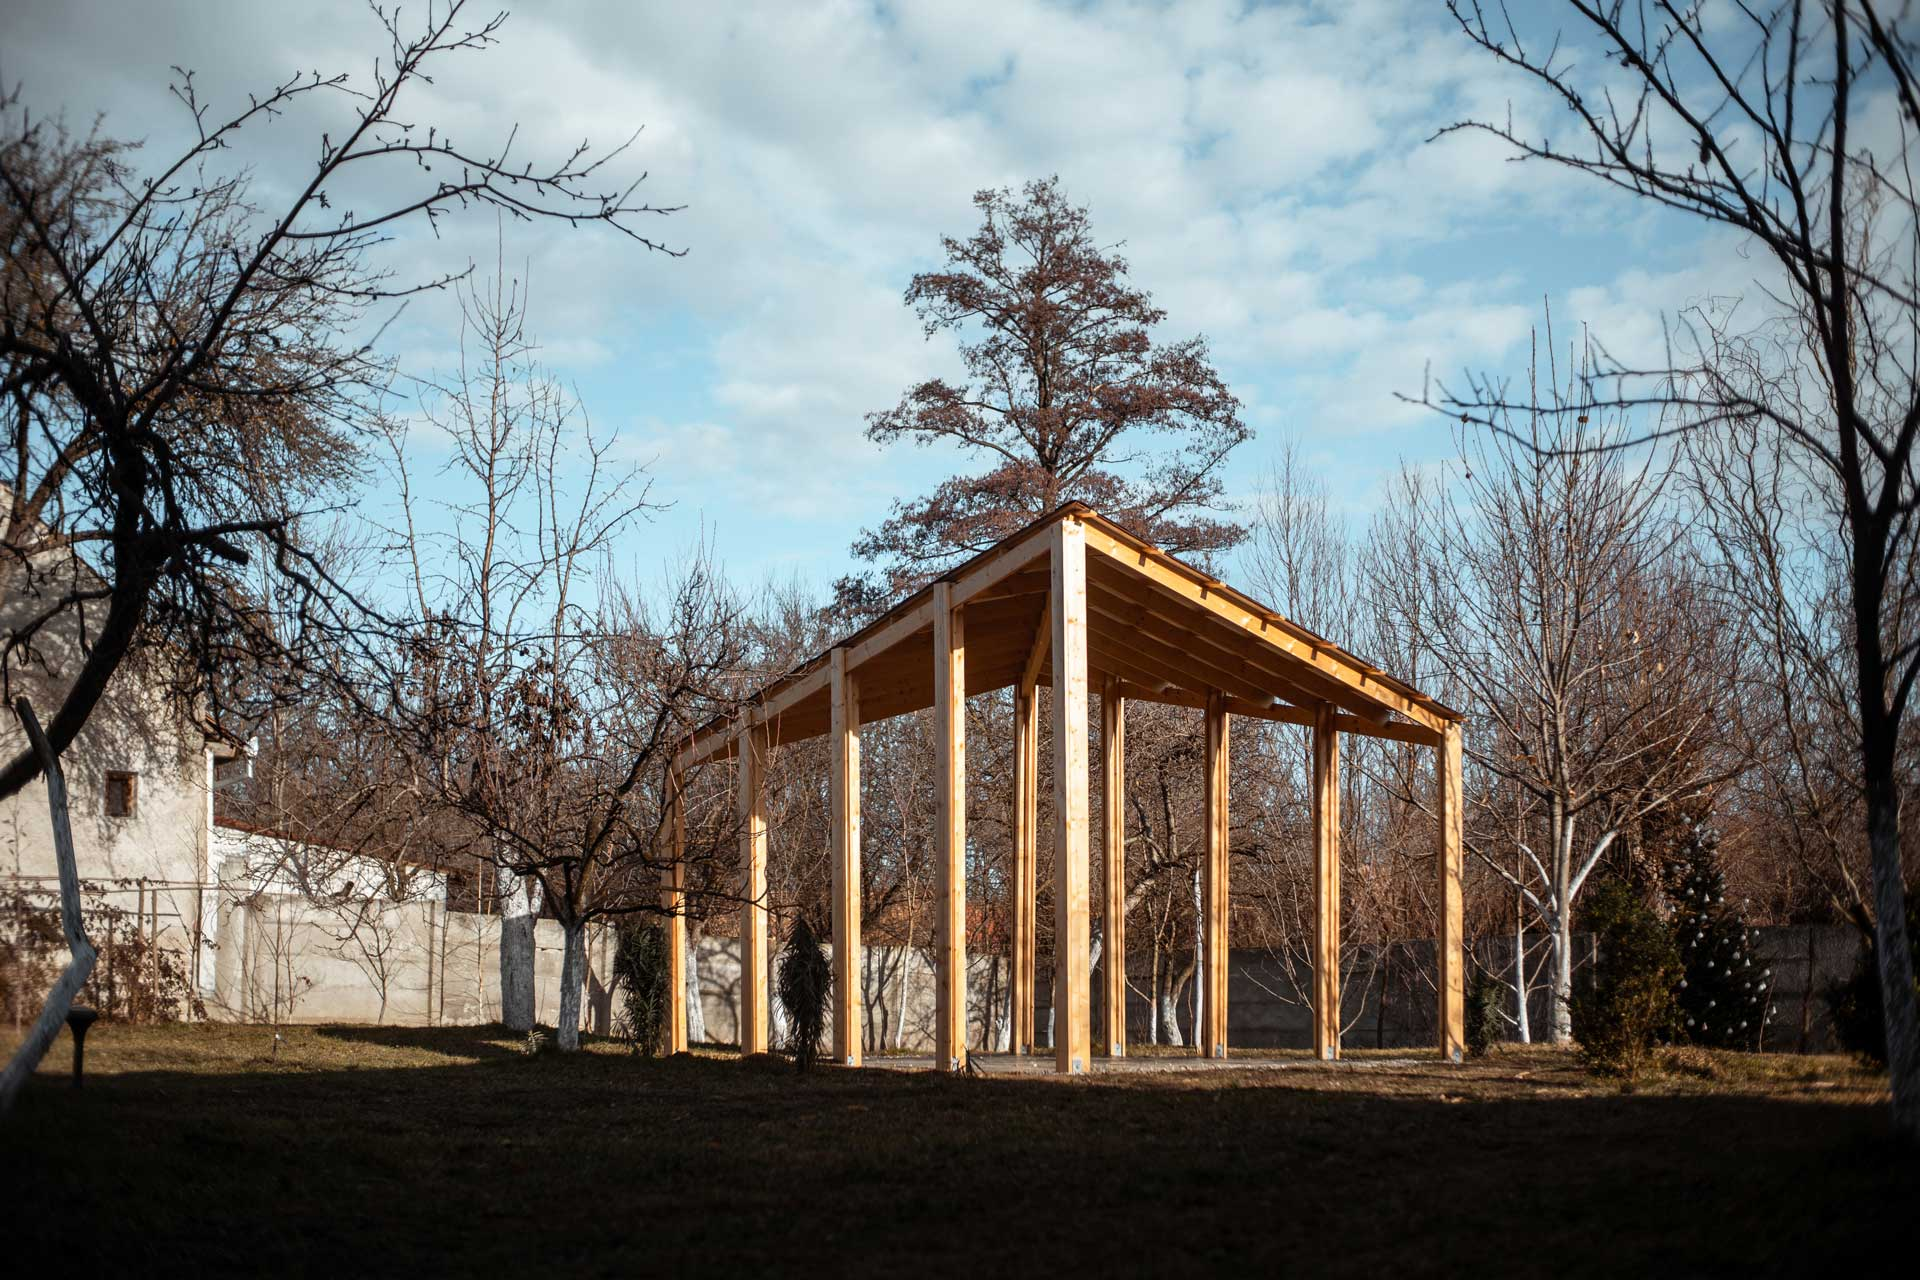 The finished wood gazebo in an early autumn morning light.